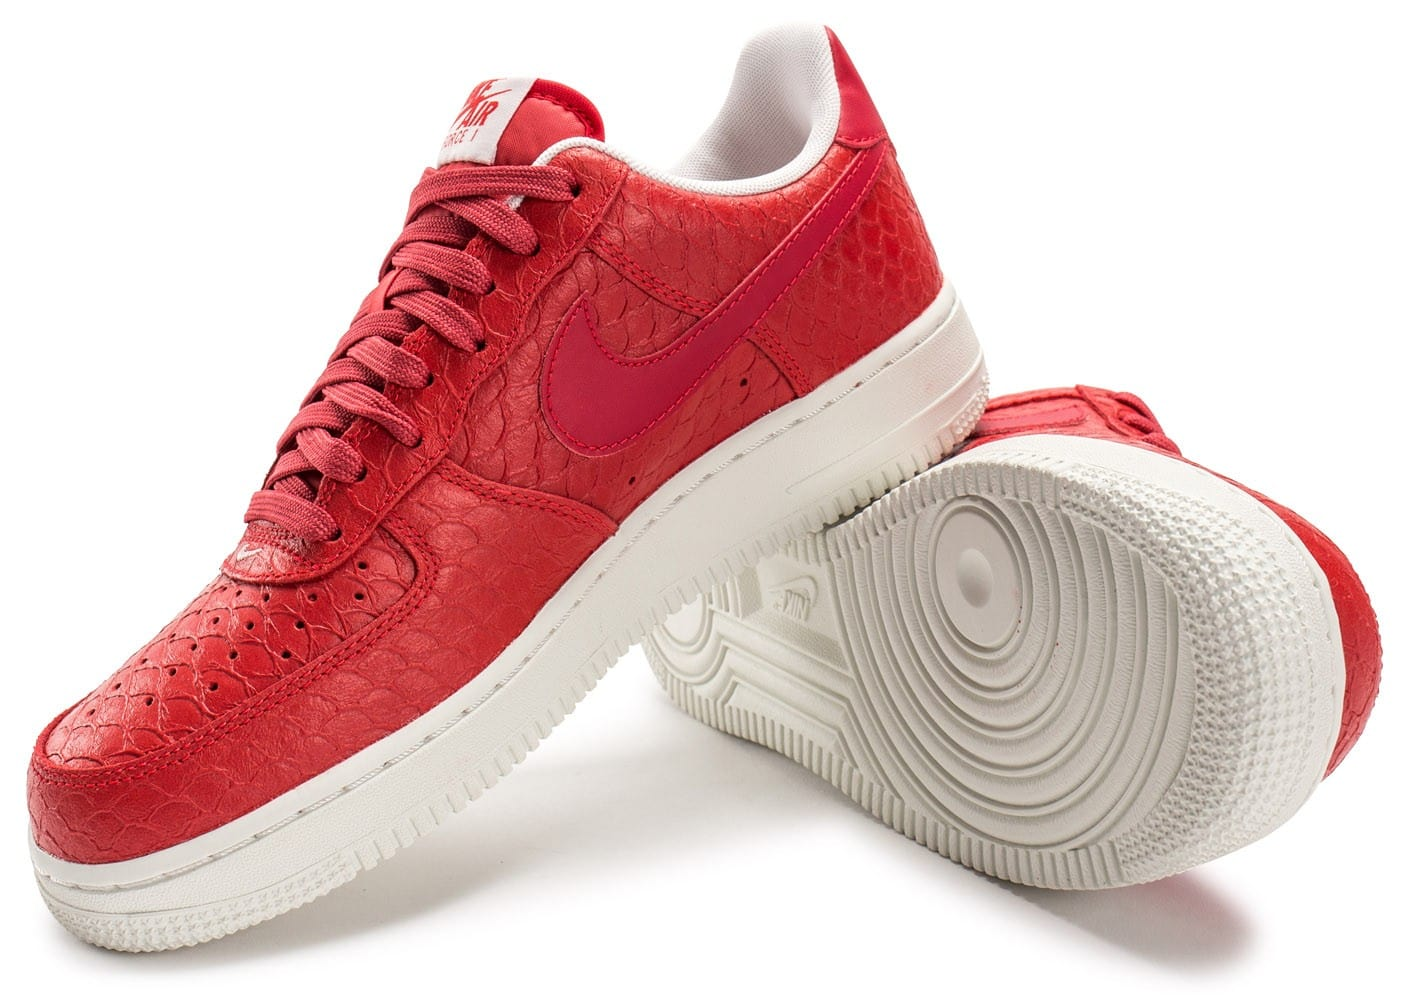 Nike Air Force 1 07 LV8 Snake rouge Chaussures Baskets